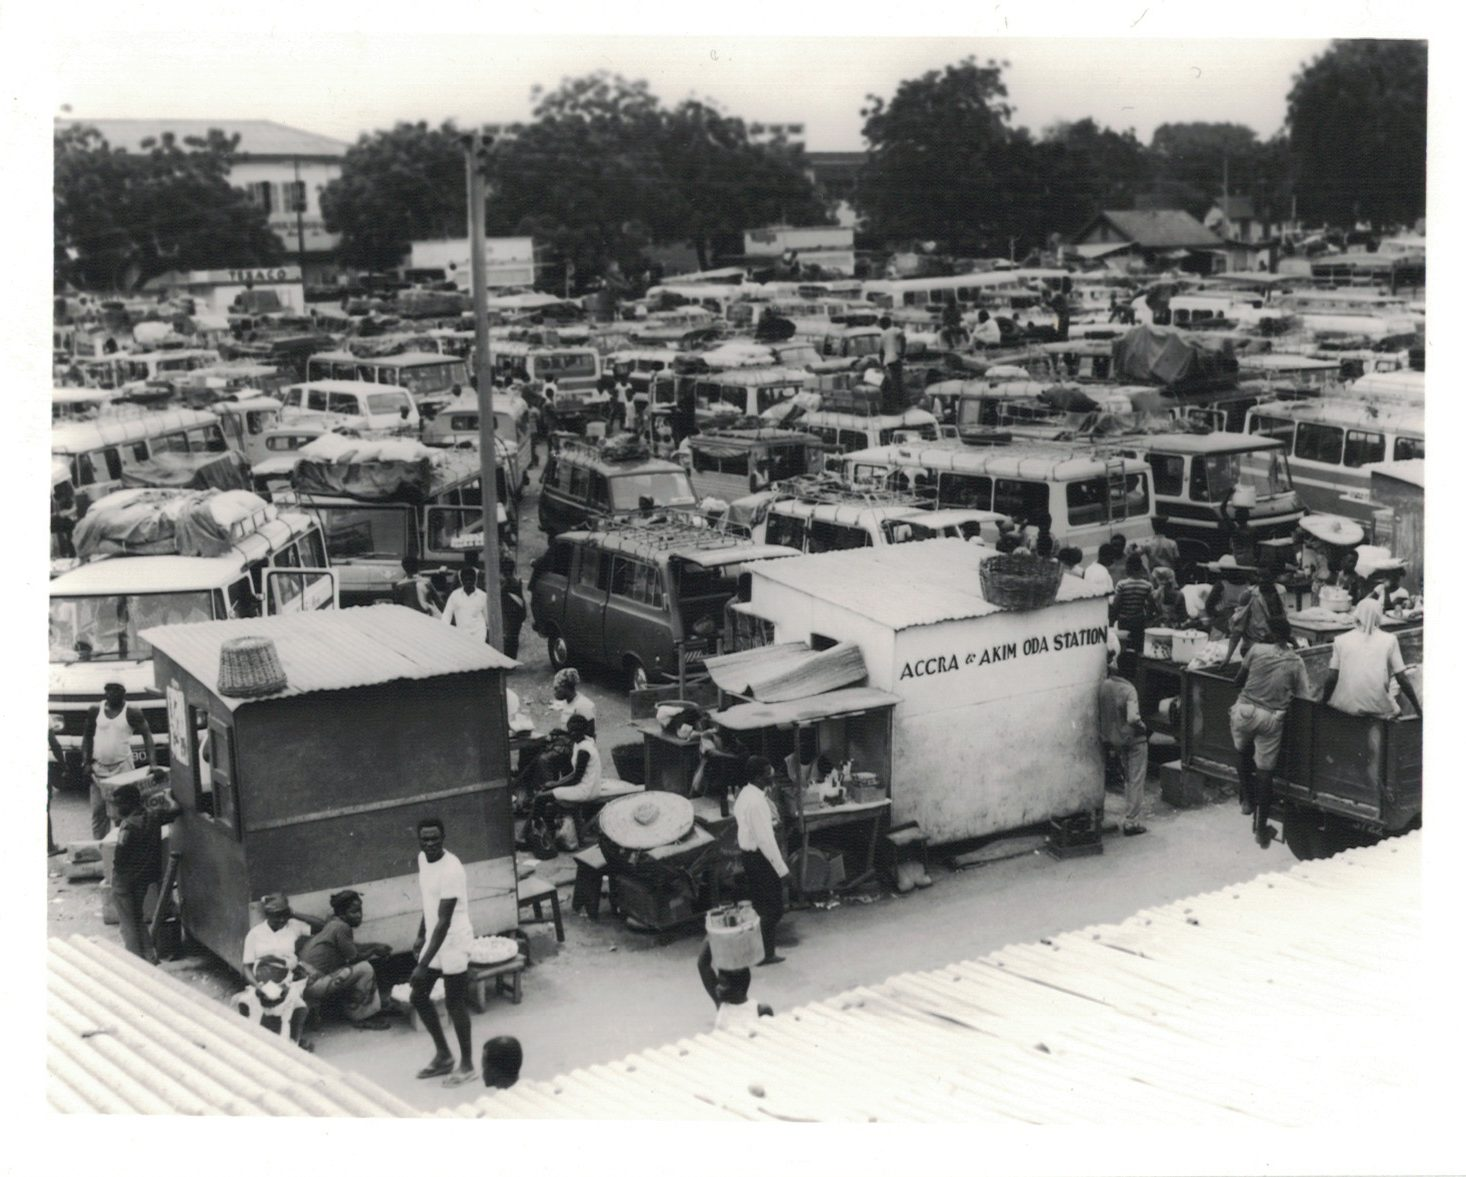 """A view of Accra Lorry Station,"" E. S. Boateng, 29/5/1973. Source: PS/1365/10, Photographic Section, Information Services Department, Ministry of Information, Accra, Ghana."